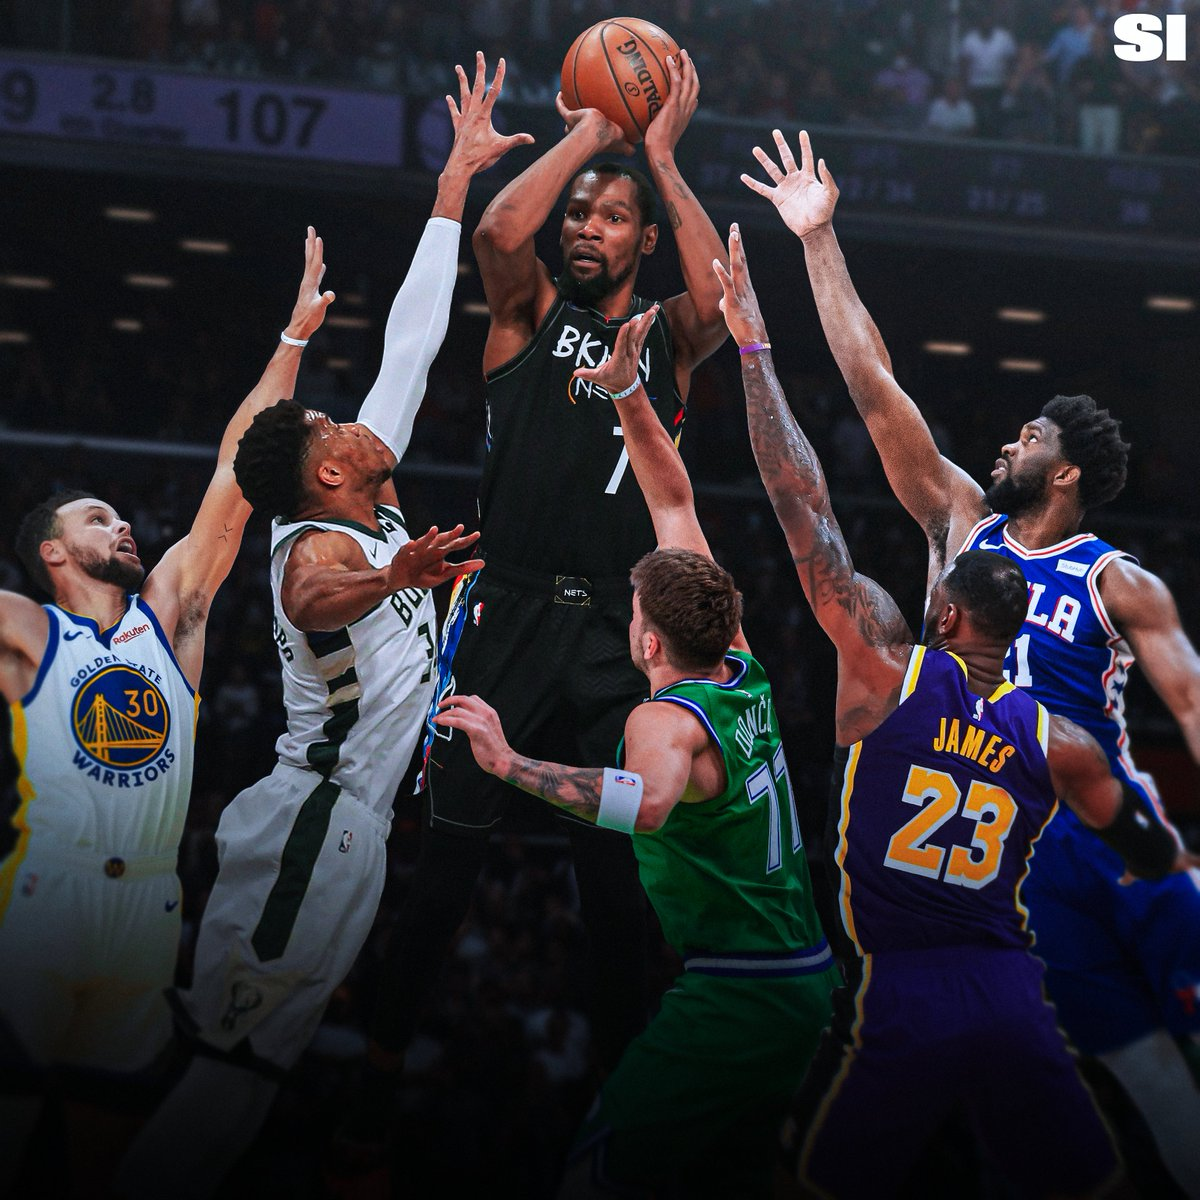 RT @SInow: #SITop100 NBA players of 2022:   Why Kevin Durant is the best player on Earth https://t.co/slDgs8PUD5 https://t.co/LwXBZNge0g